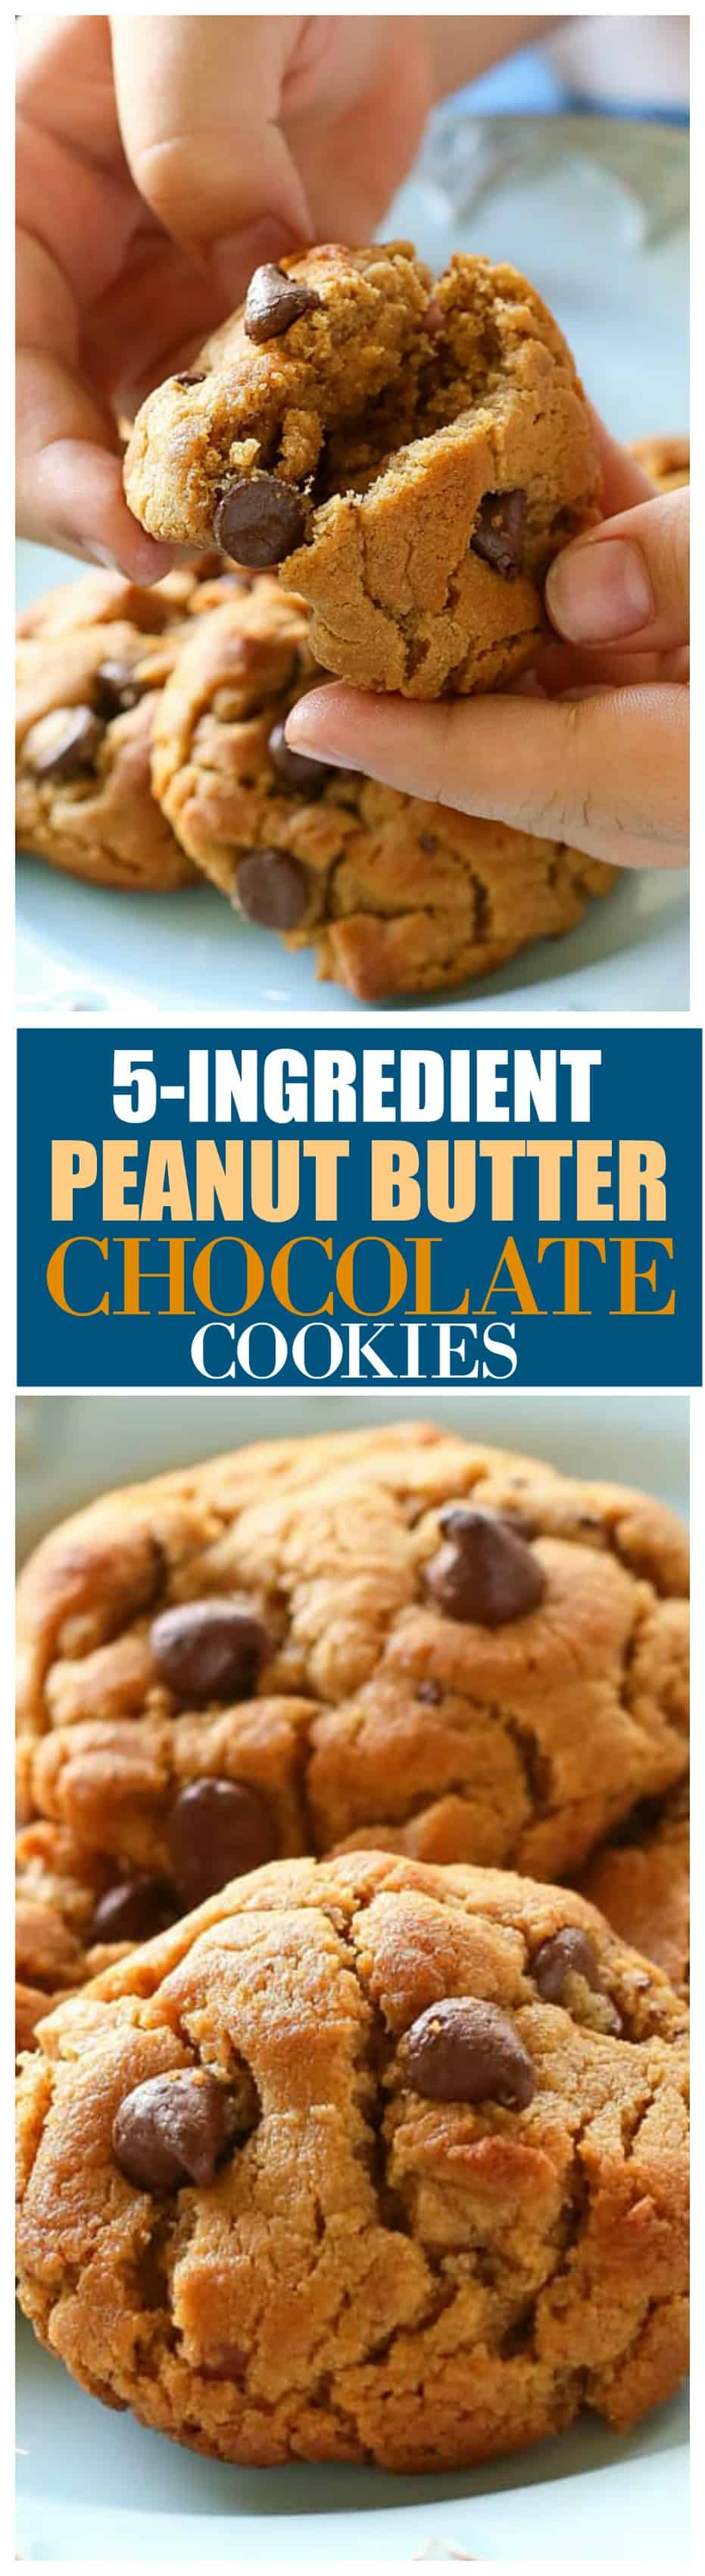 Flourless 5- Ingredient Peanut Butter Chocolate Chip Cookies - only a few ingredients and gluten free!